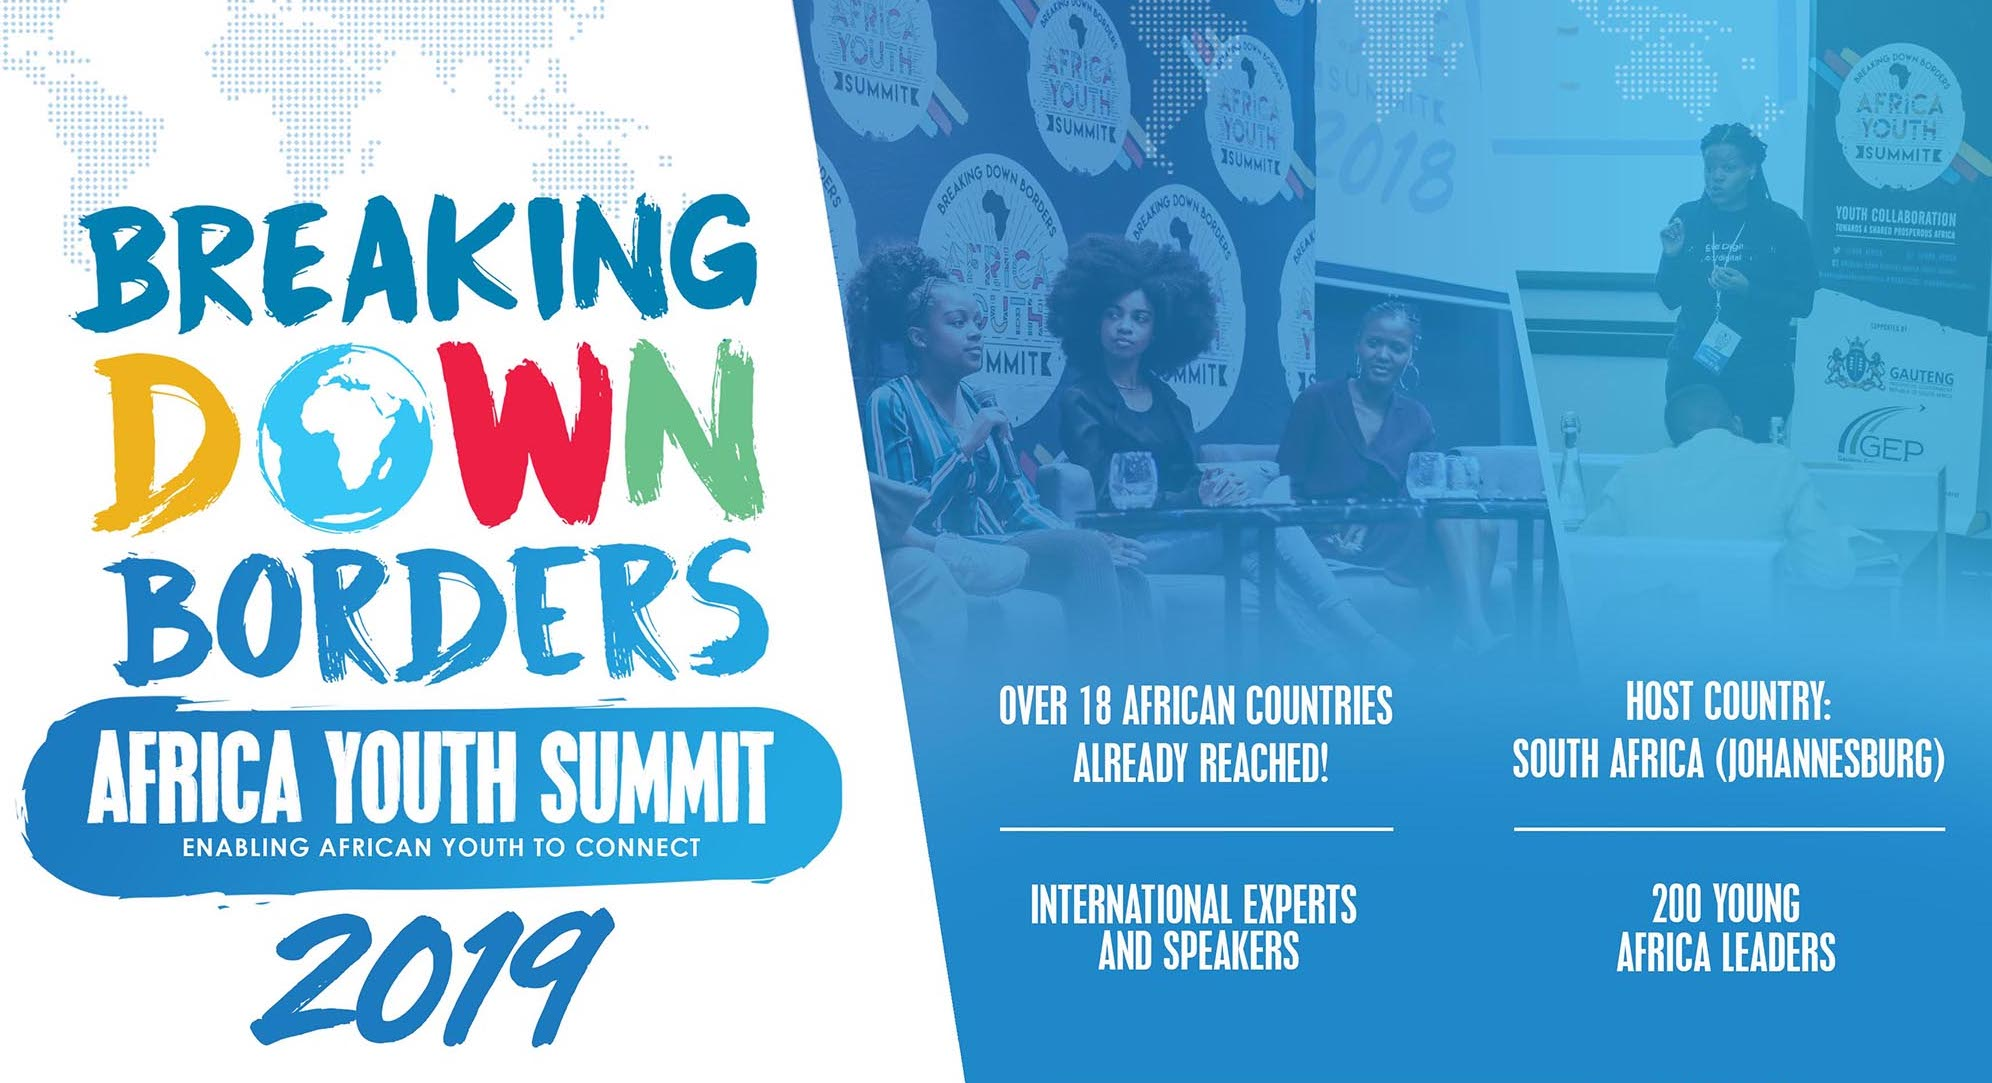 Breaking Down Borders Africa Youth Summit 2019 (Fully funded to South Africa)